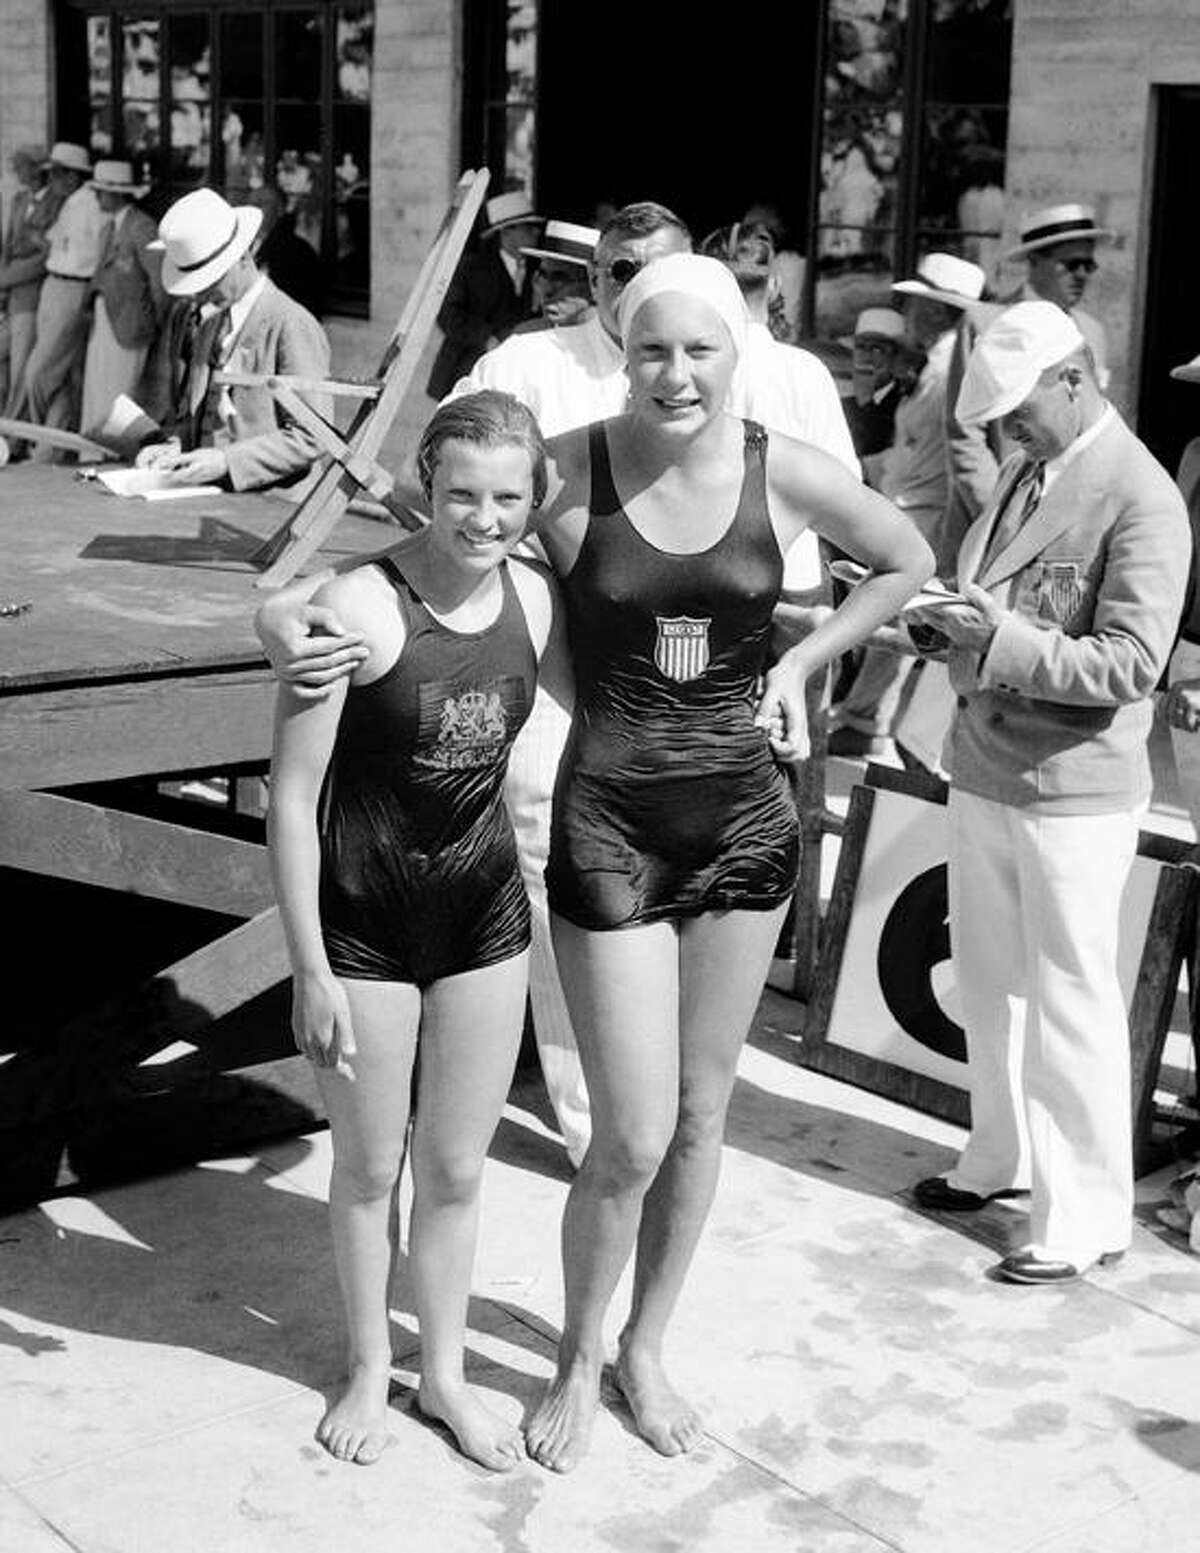 Helene Madison, right, and Willy Den Guden, Holland, photographed at the Olympic swimming stadium in Los Angeles, August 8, 1932 when they were first and second, respectively, in the finals of the 100-meter free style swim. Miss Madison set a new world's record, surpassing a new one which Miss Den Guden had set during the semi-finals. (AP Photo)